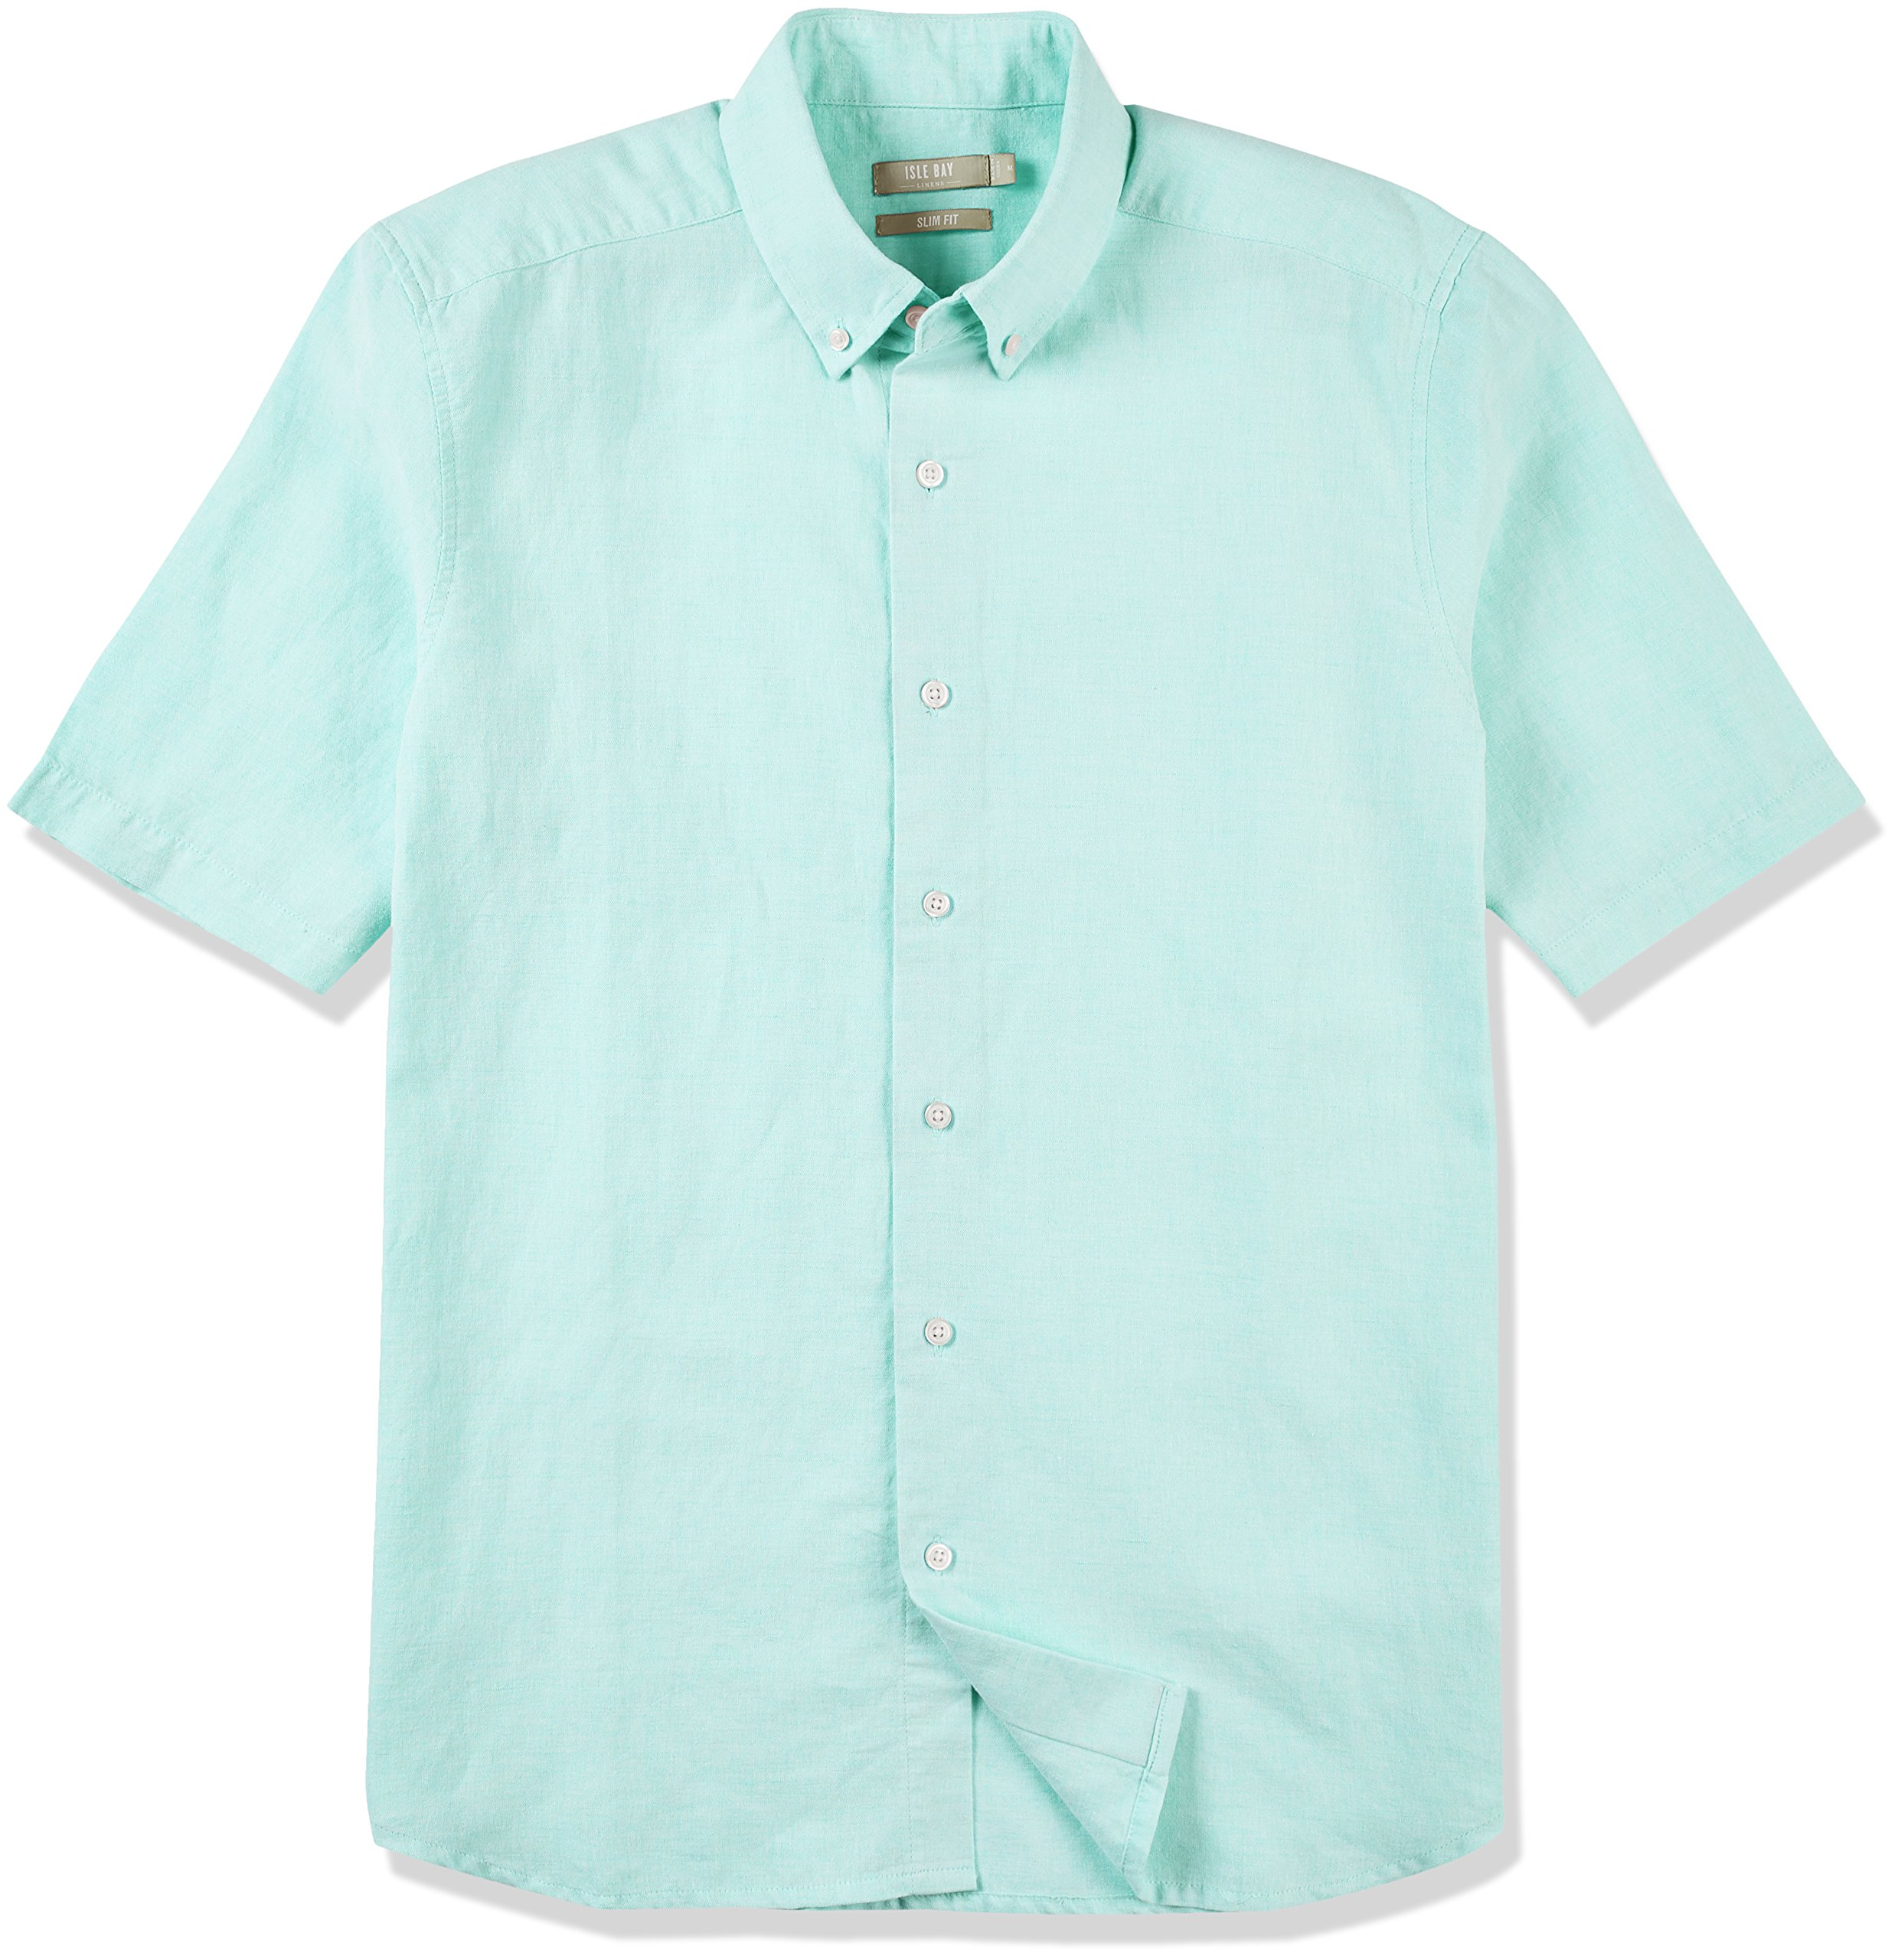 Isle Bay Linens Men's Slim Fit Short Sleeve Button-Down Collar Casual Woven Shirt Chambray Apple Green Large by Isle Bay Linens